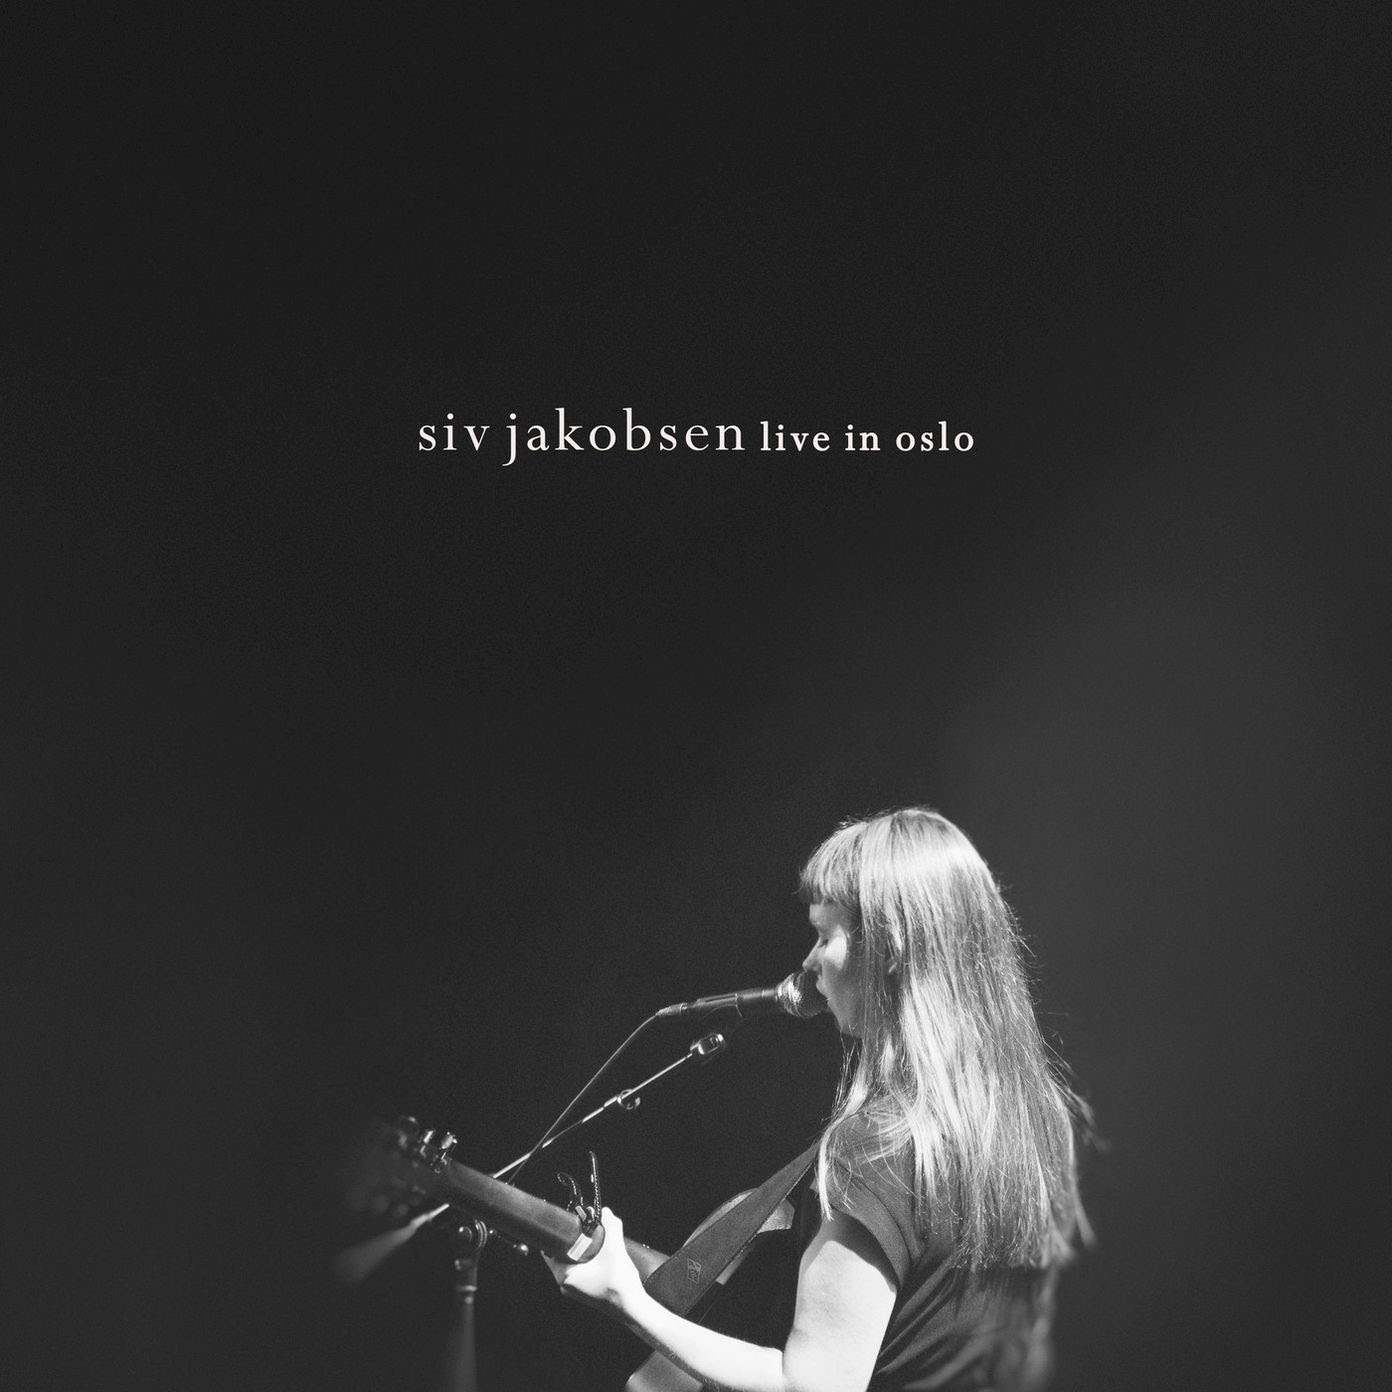 Live in Oslo by Siv Jakobsen